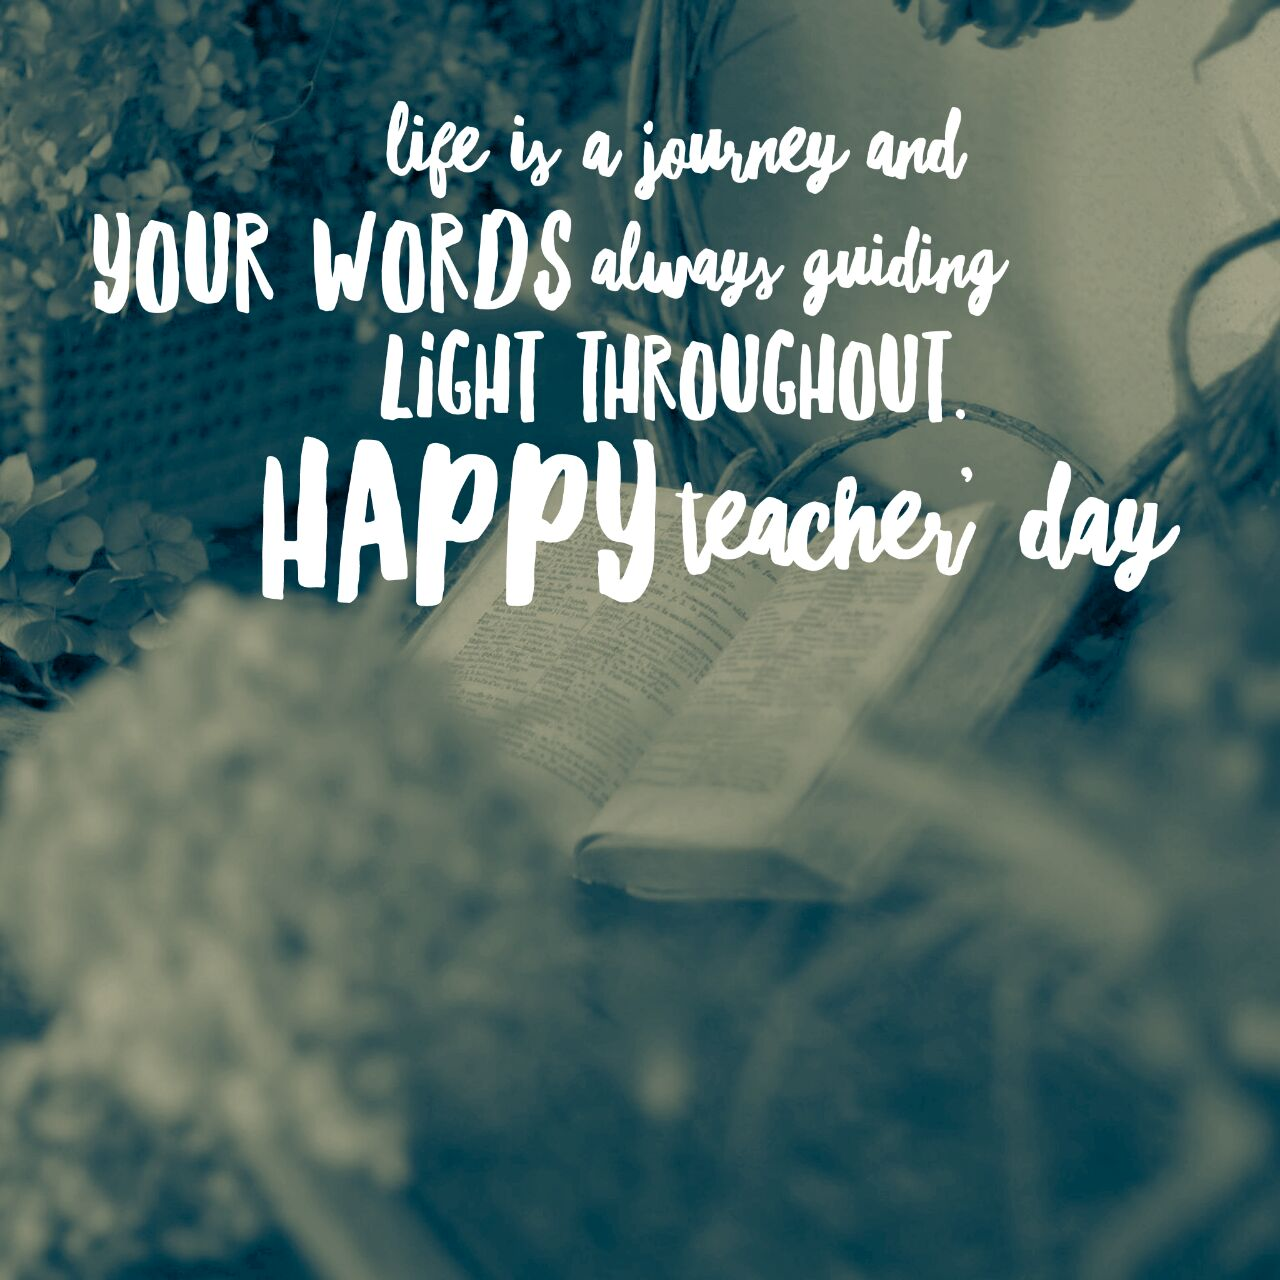 Happy Teachers Day Messages, Wish, Quotes, And Thoughts